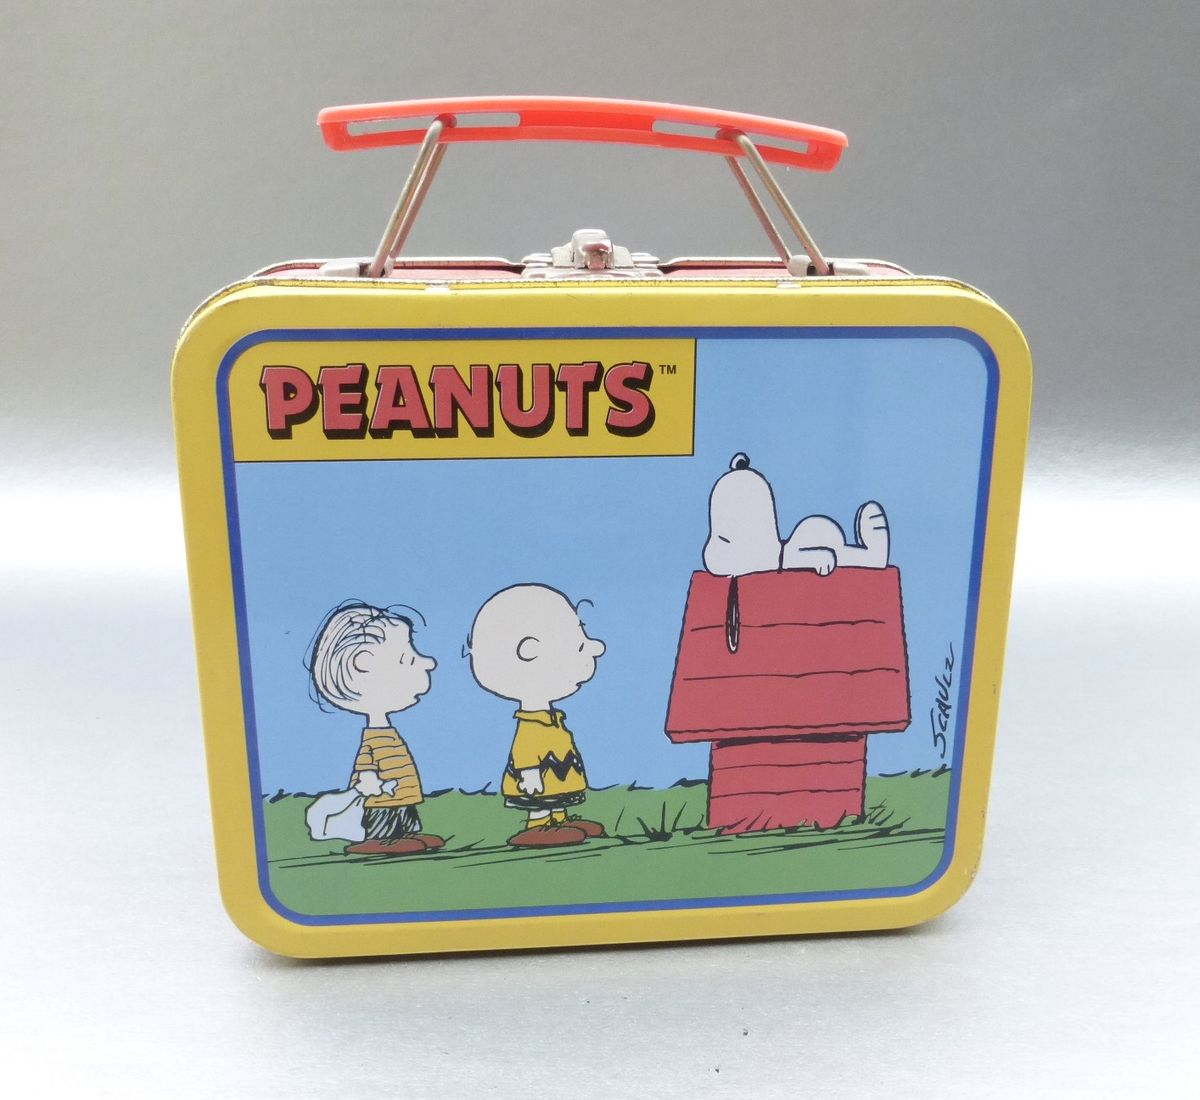 Vintage 90s Snoopy Metal Lunch Box Tin Pail Peanuts Charlie Brown Schulz Lucy Linus Schroeder Collection Collectible United Feature Syndicate Cartoon Animation Animated Icon Gang Villa Collezione Boutique